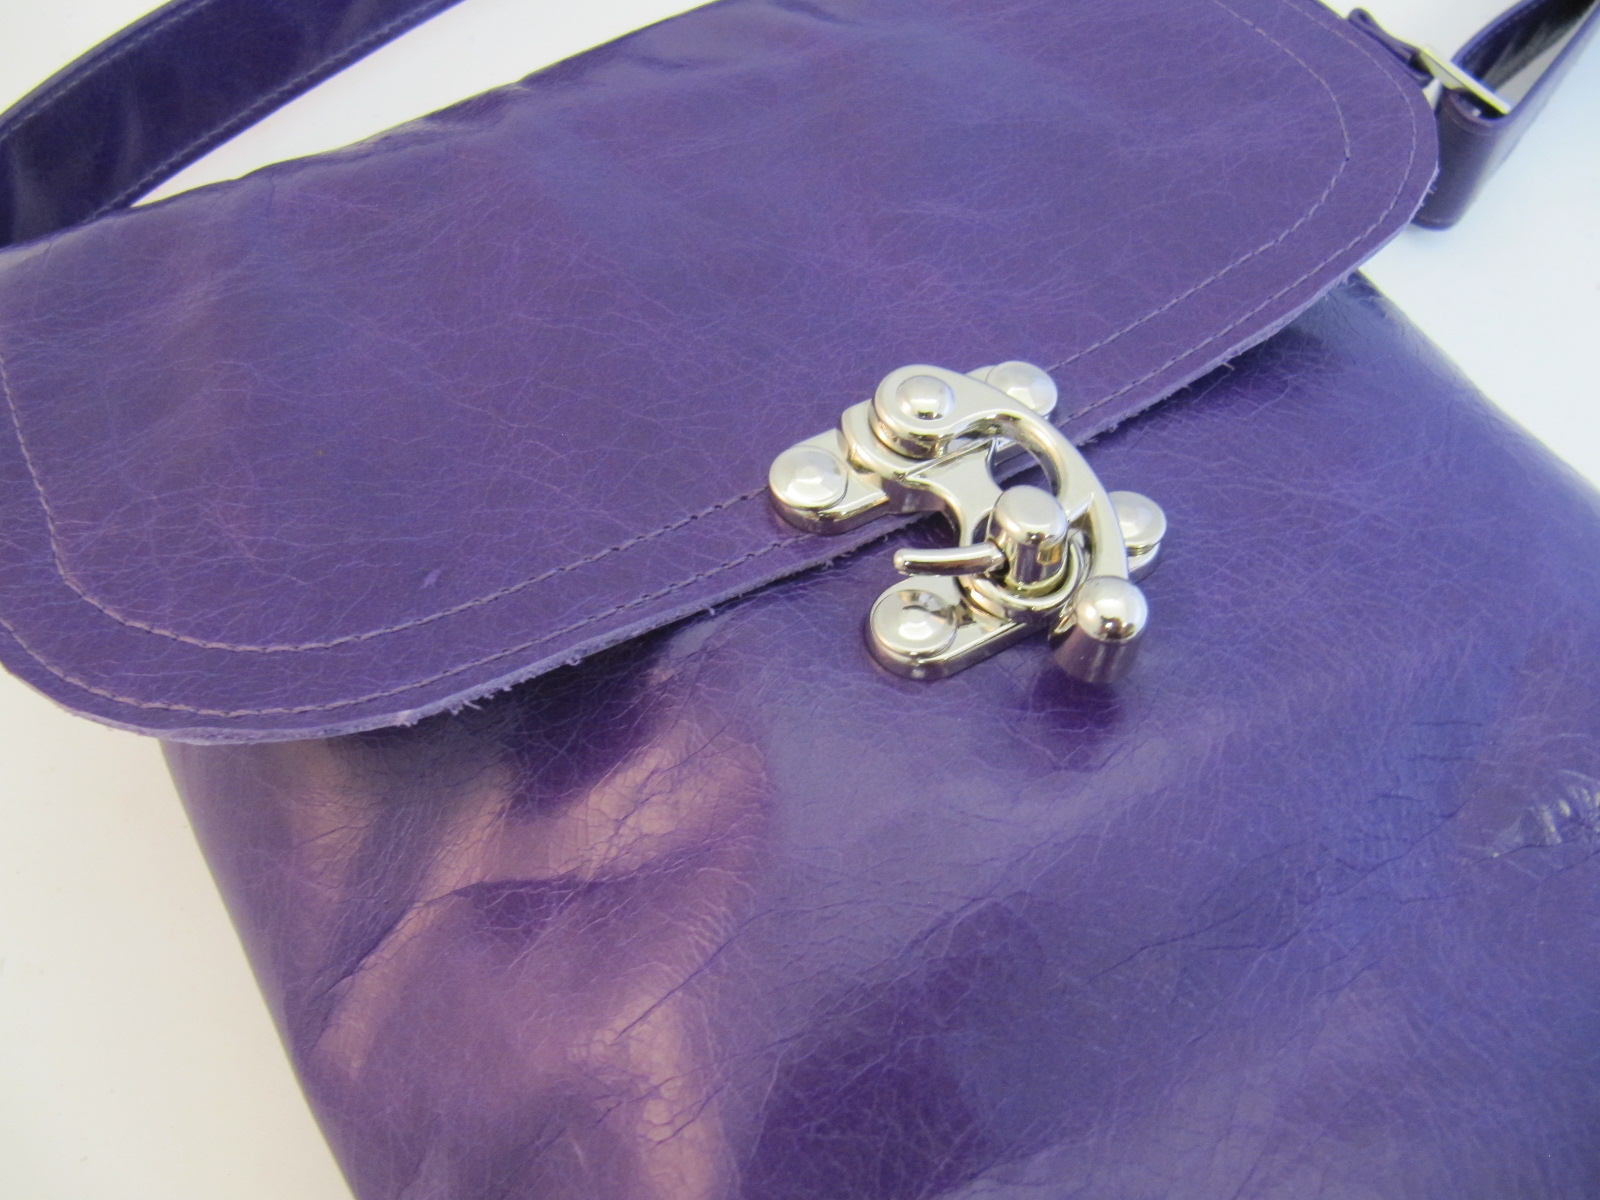 Messenger bag in purple leather